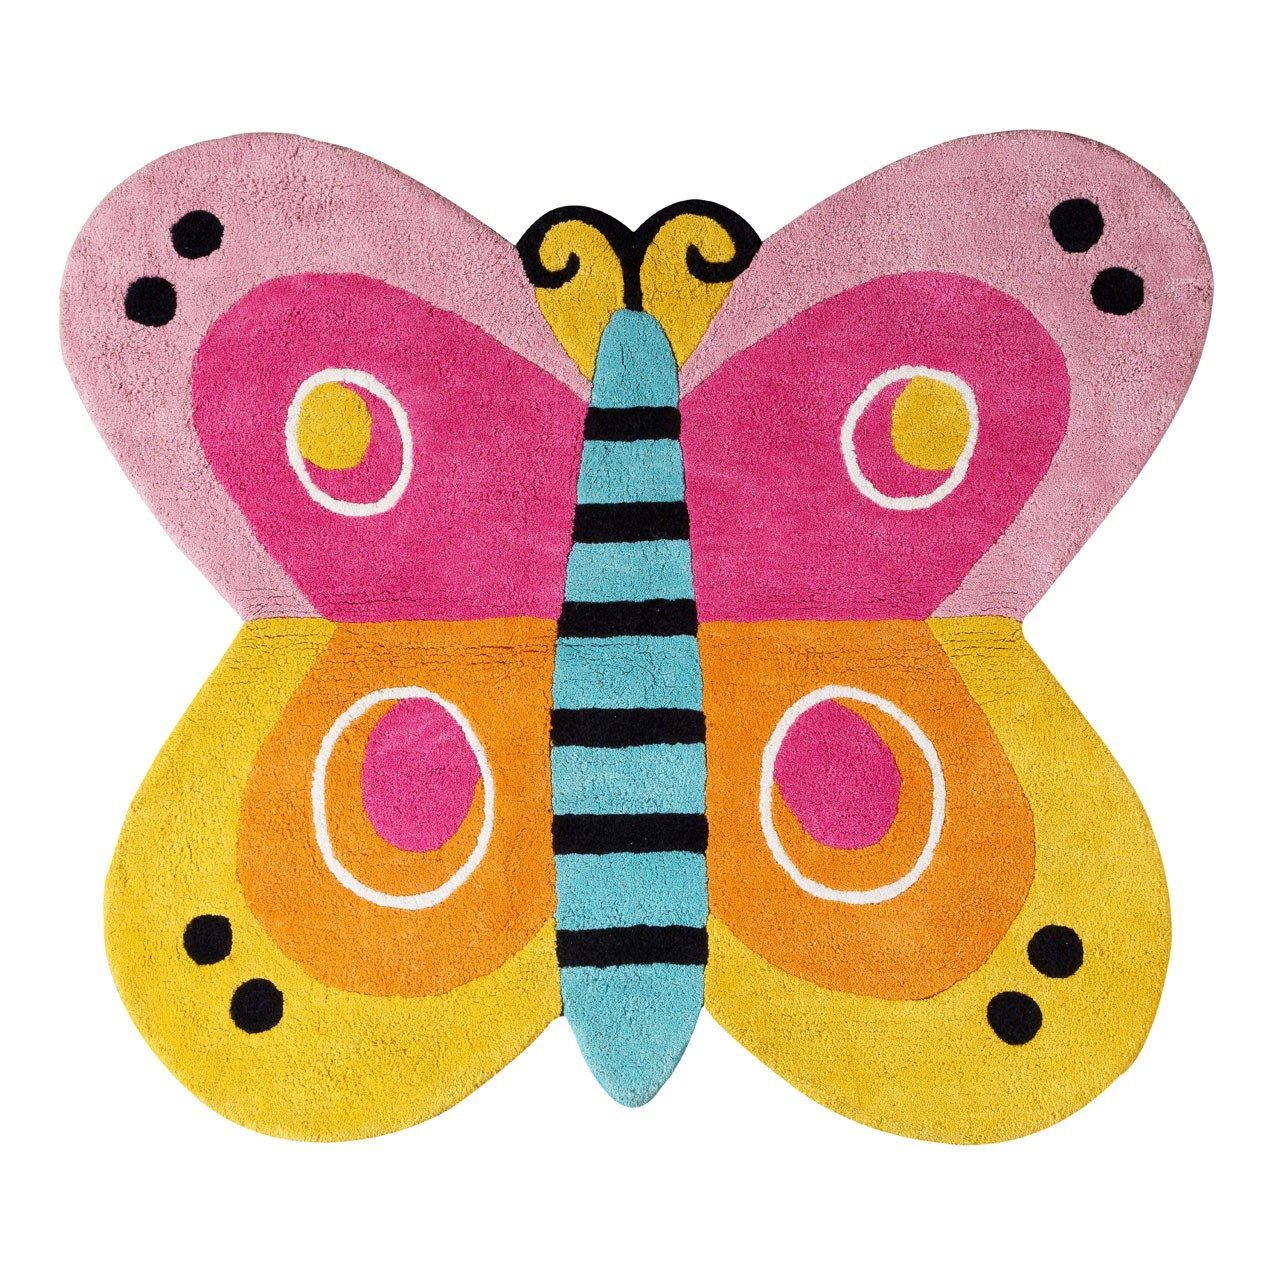 Prime Furnishing Kids Butterfly Rug, Cotton - Multi Colour